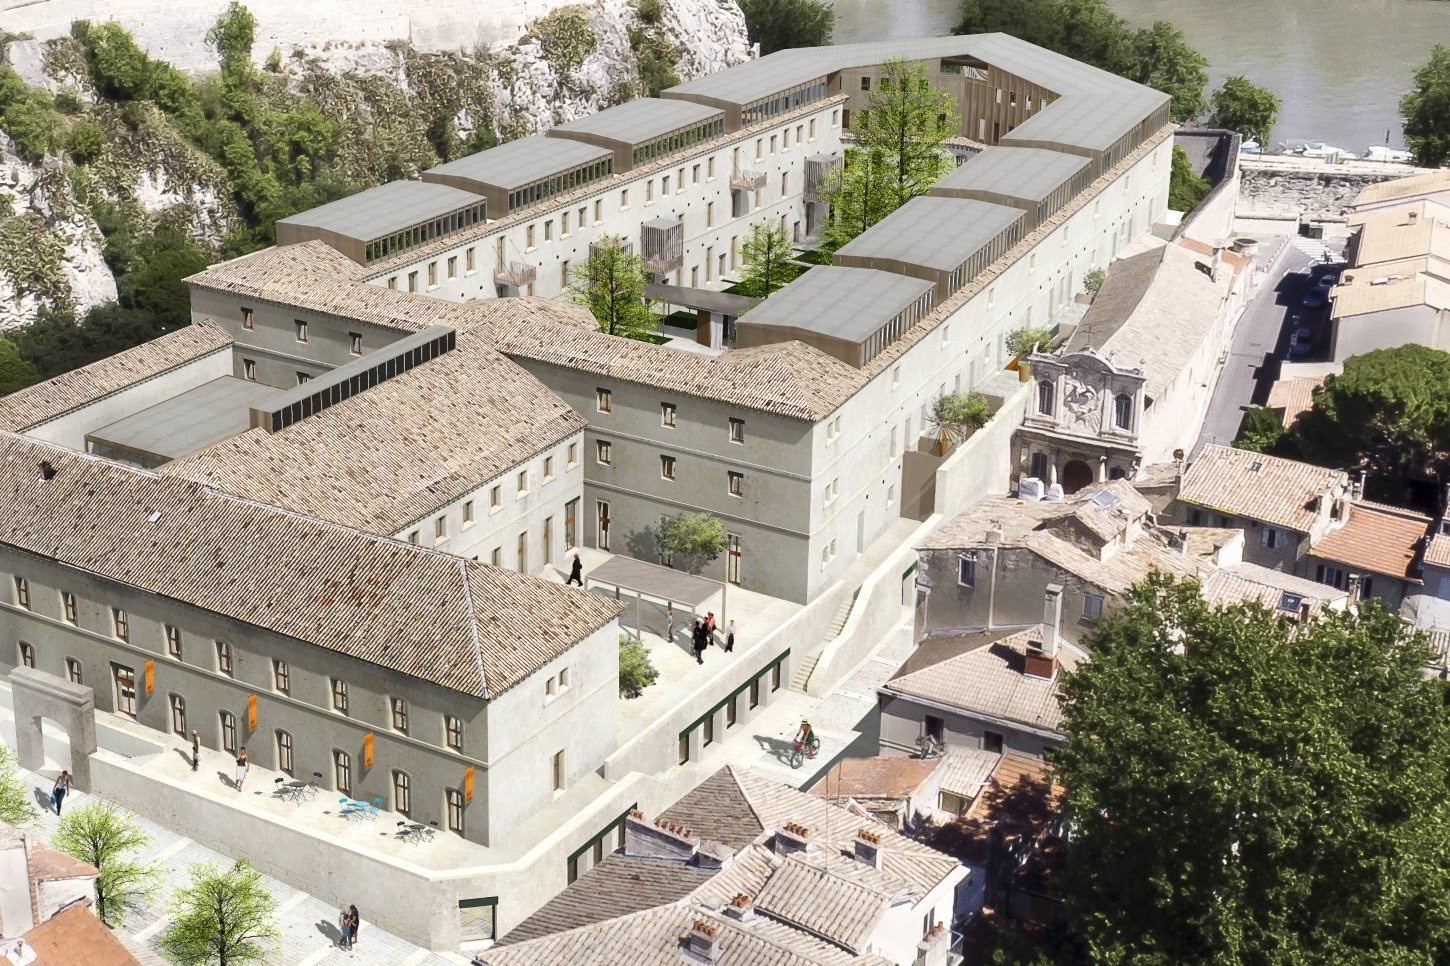 Reconversion de la prison sainte anne avignon vaucluse for Reconversion architecte